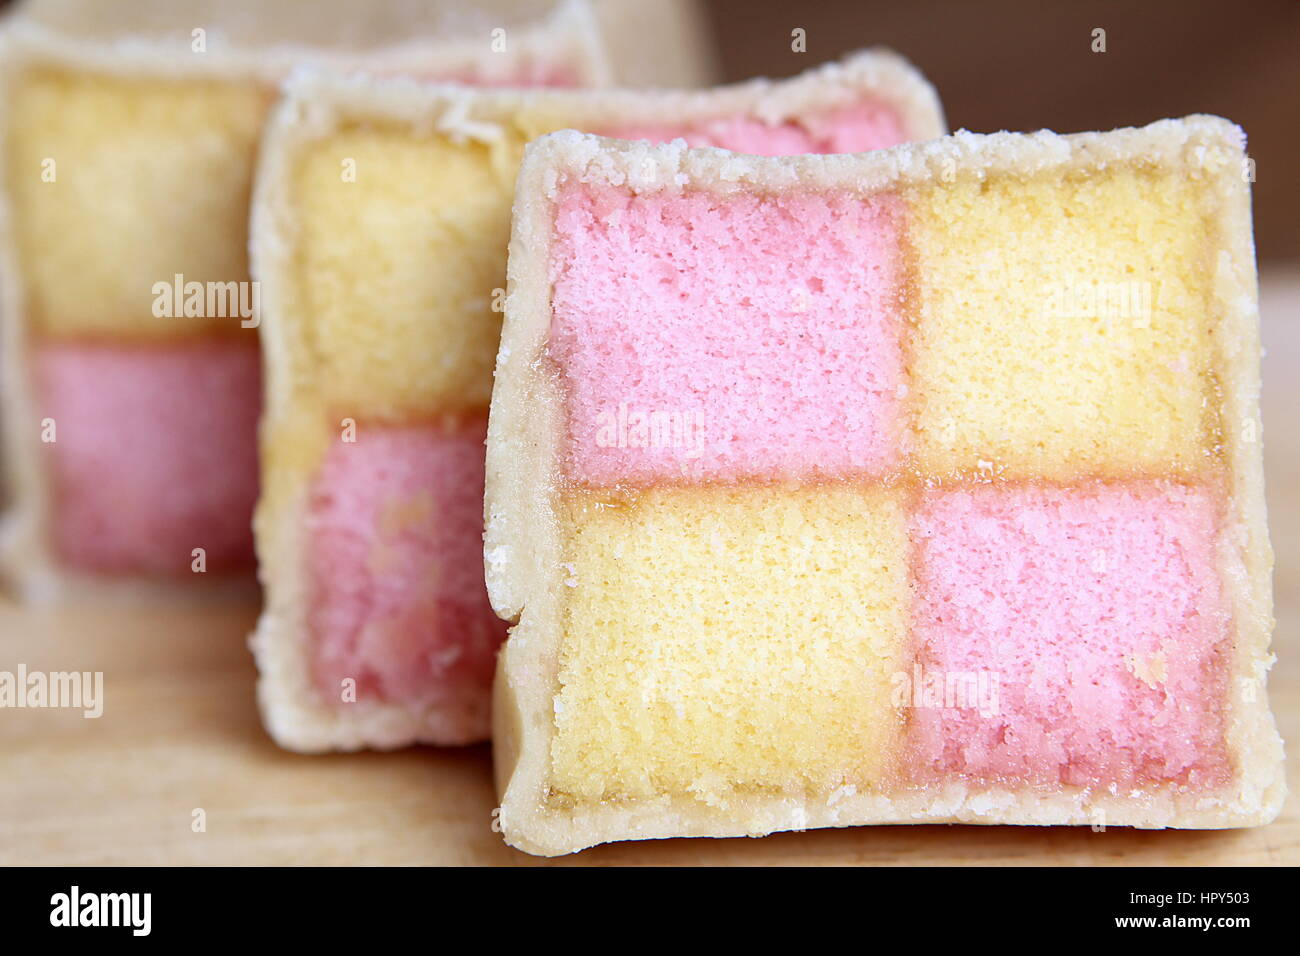 Freshly cut Battenberg Cake slices with pink and yellow sponge covered in marzipan - Stock Image